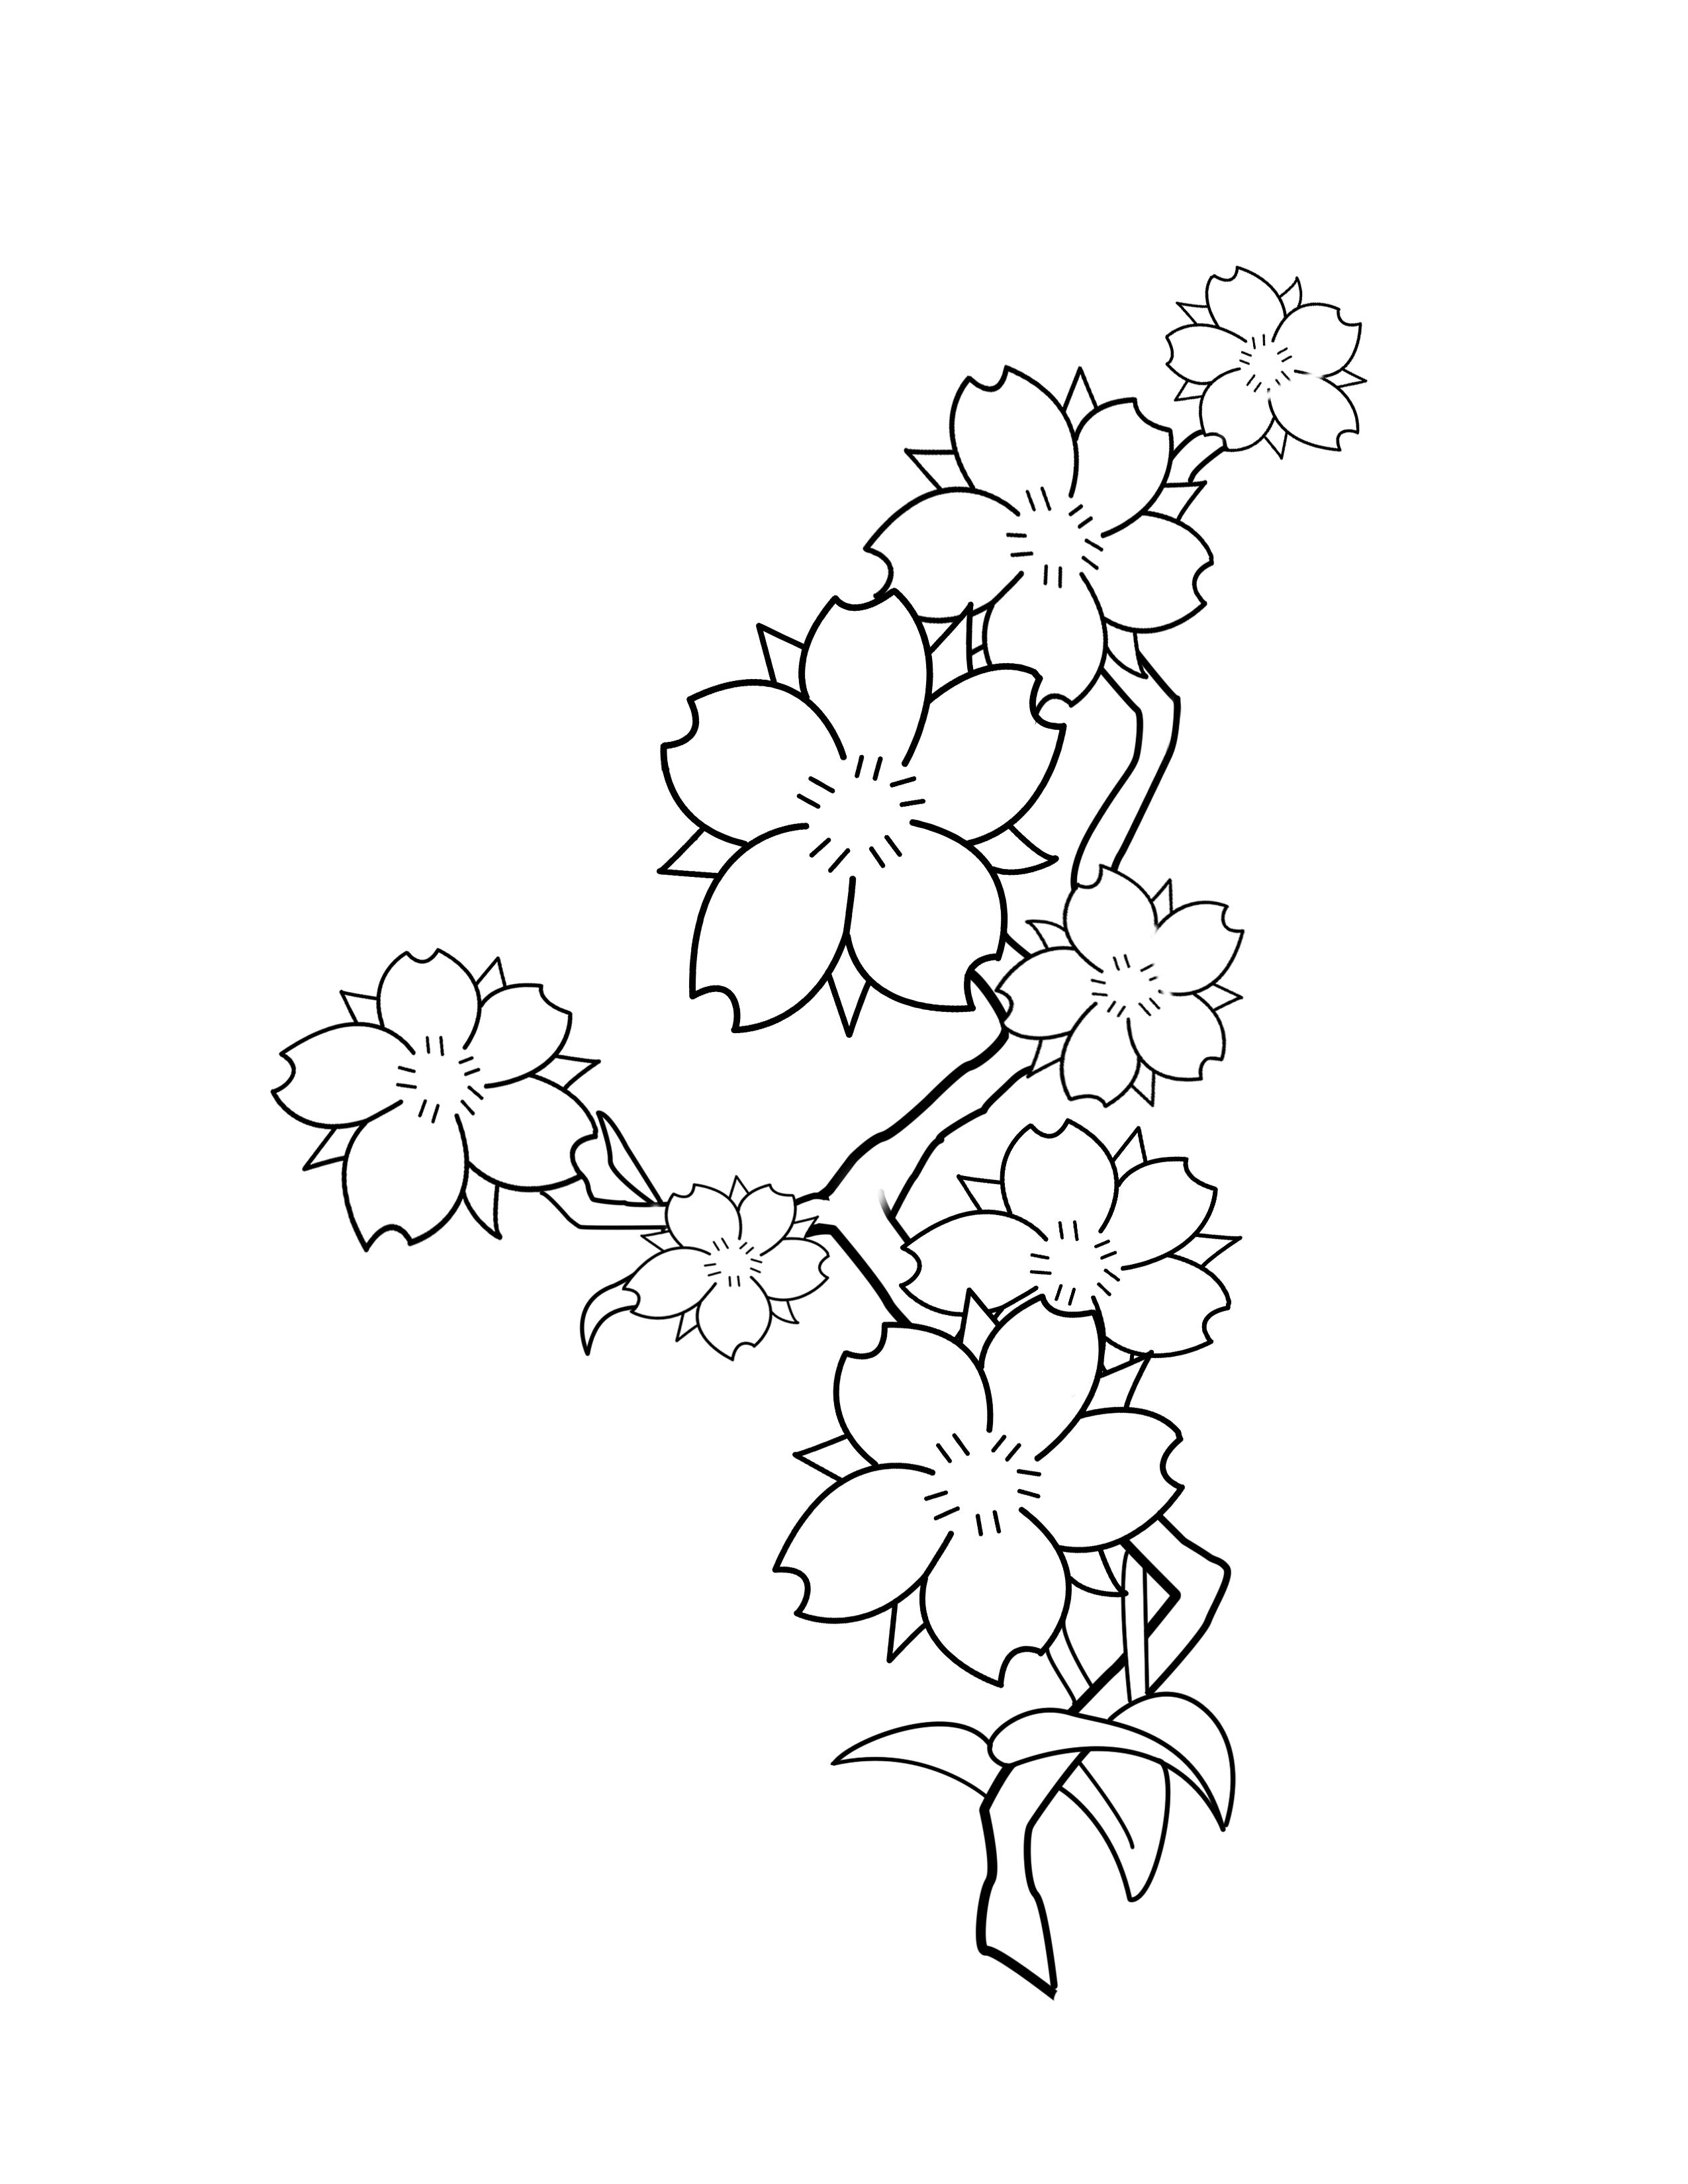 Line Art Flower Tattoos : Top aster flower drawing tattoo images for pinterest tattoos